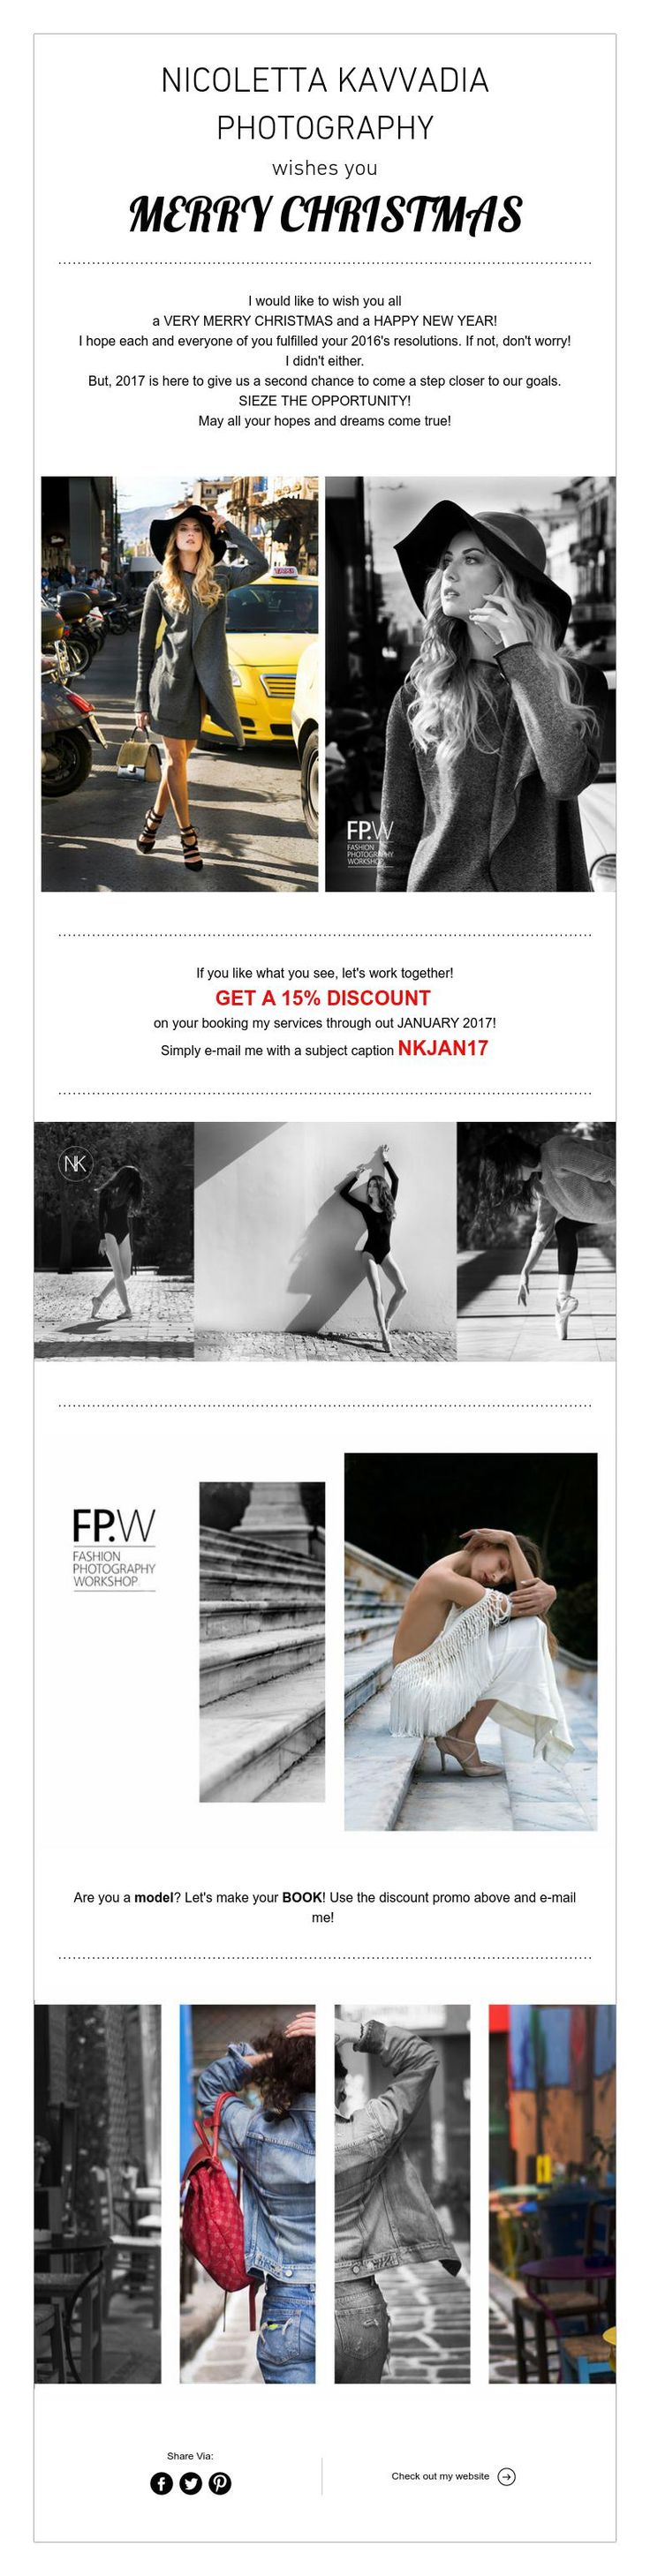 HOLIDAY GREETINGS with a NEW YEAR OFFER!